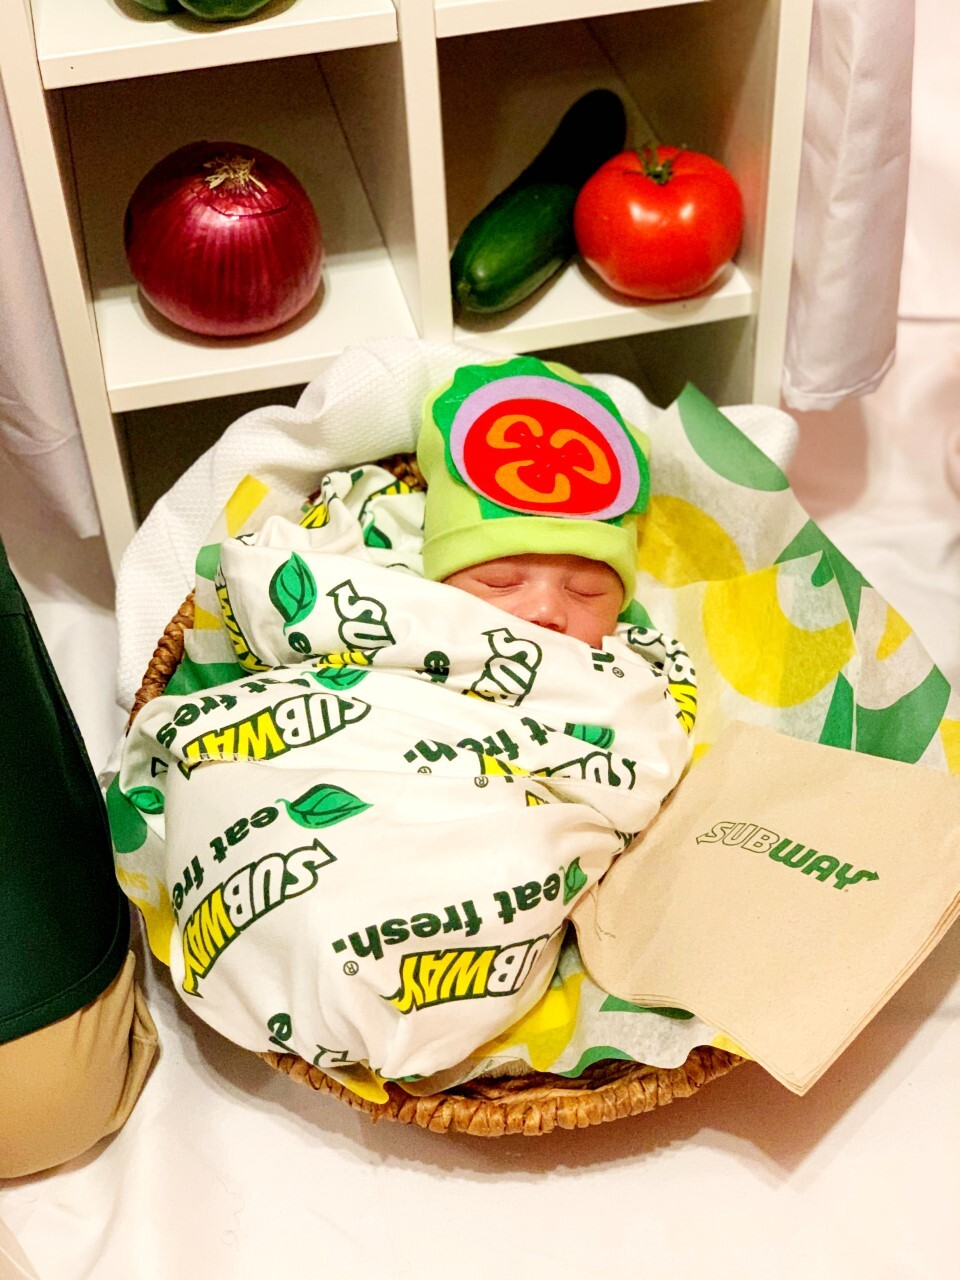 Baby Shannon as a Subway sandwich